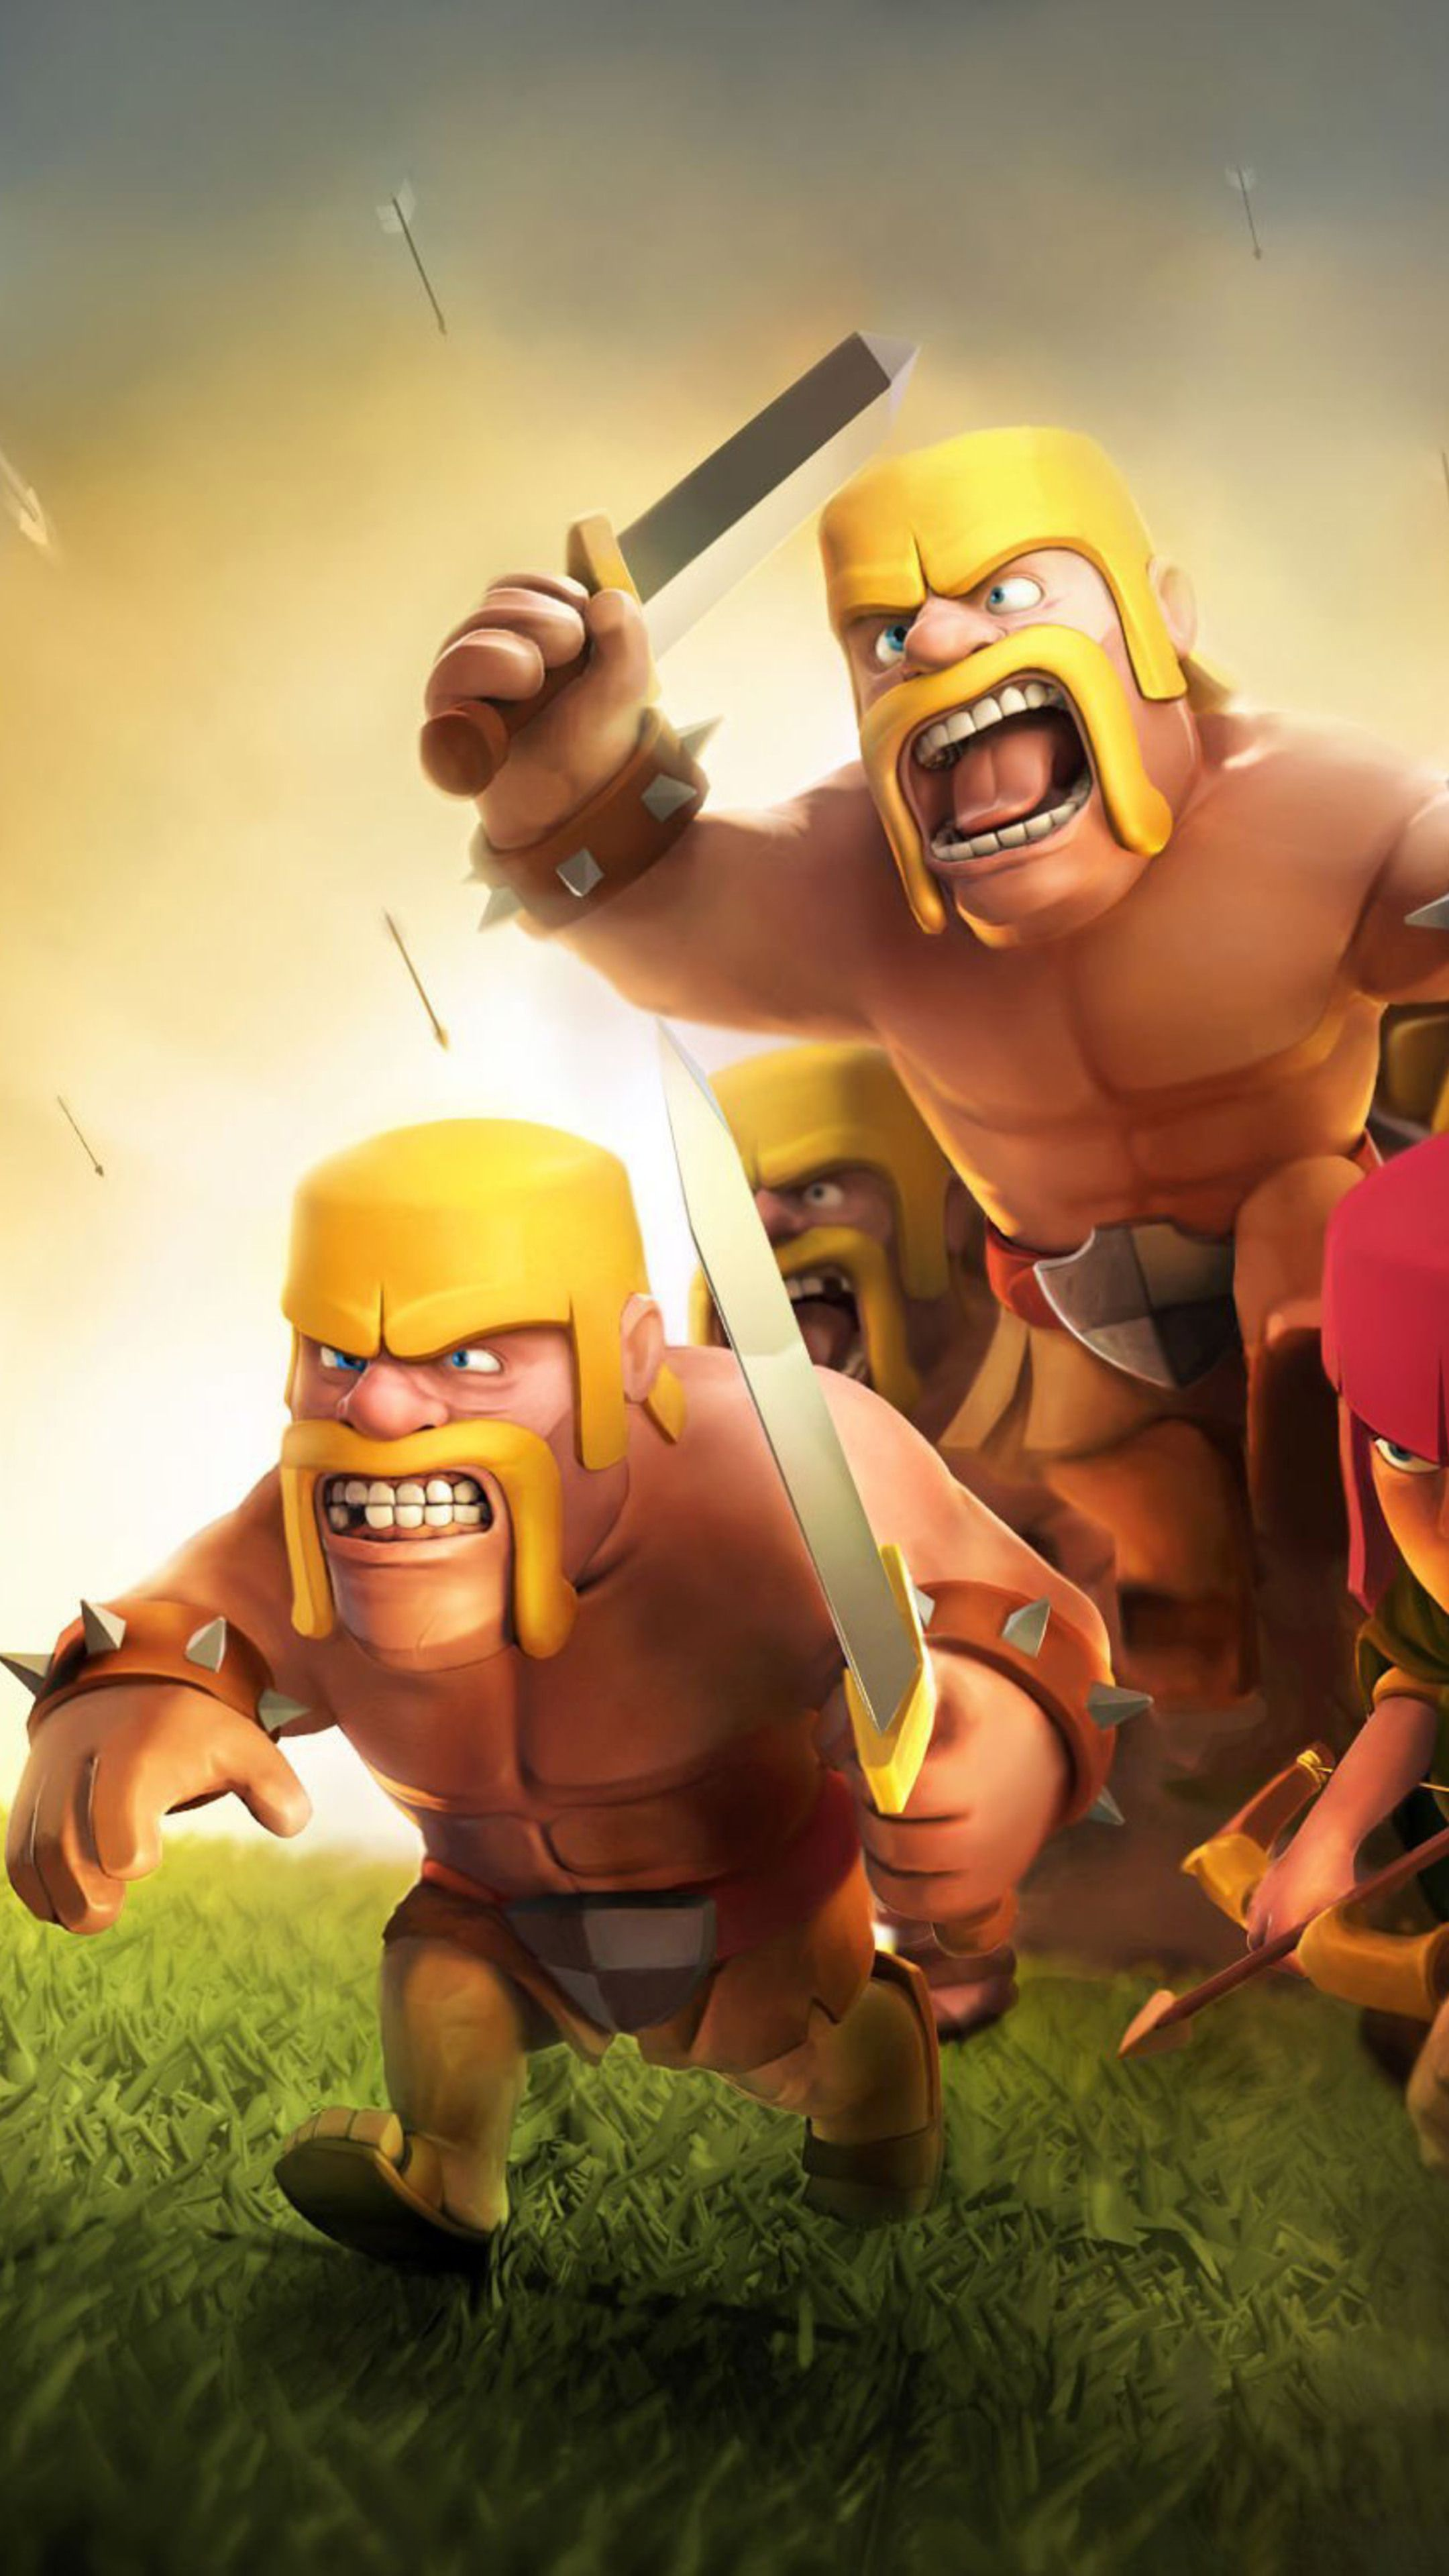 Misc Clash Of Clans Hd Wallpapers Hd 4k Background For Android Clash Of Clans Hack Clash Of Clans Clash Royale Wallpaper